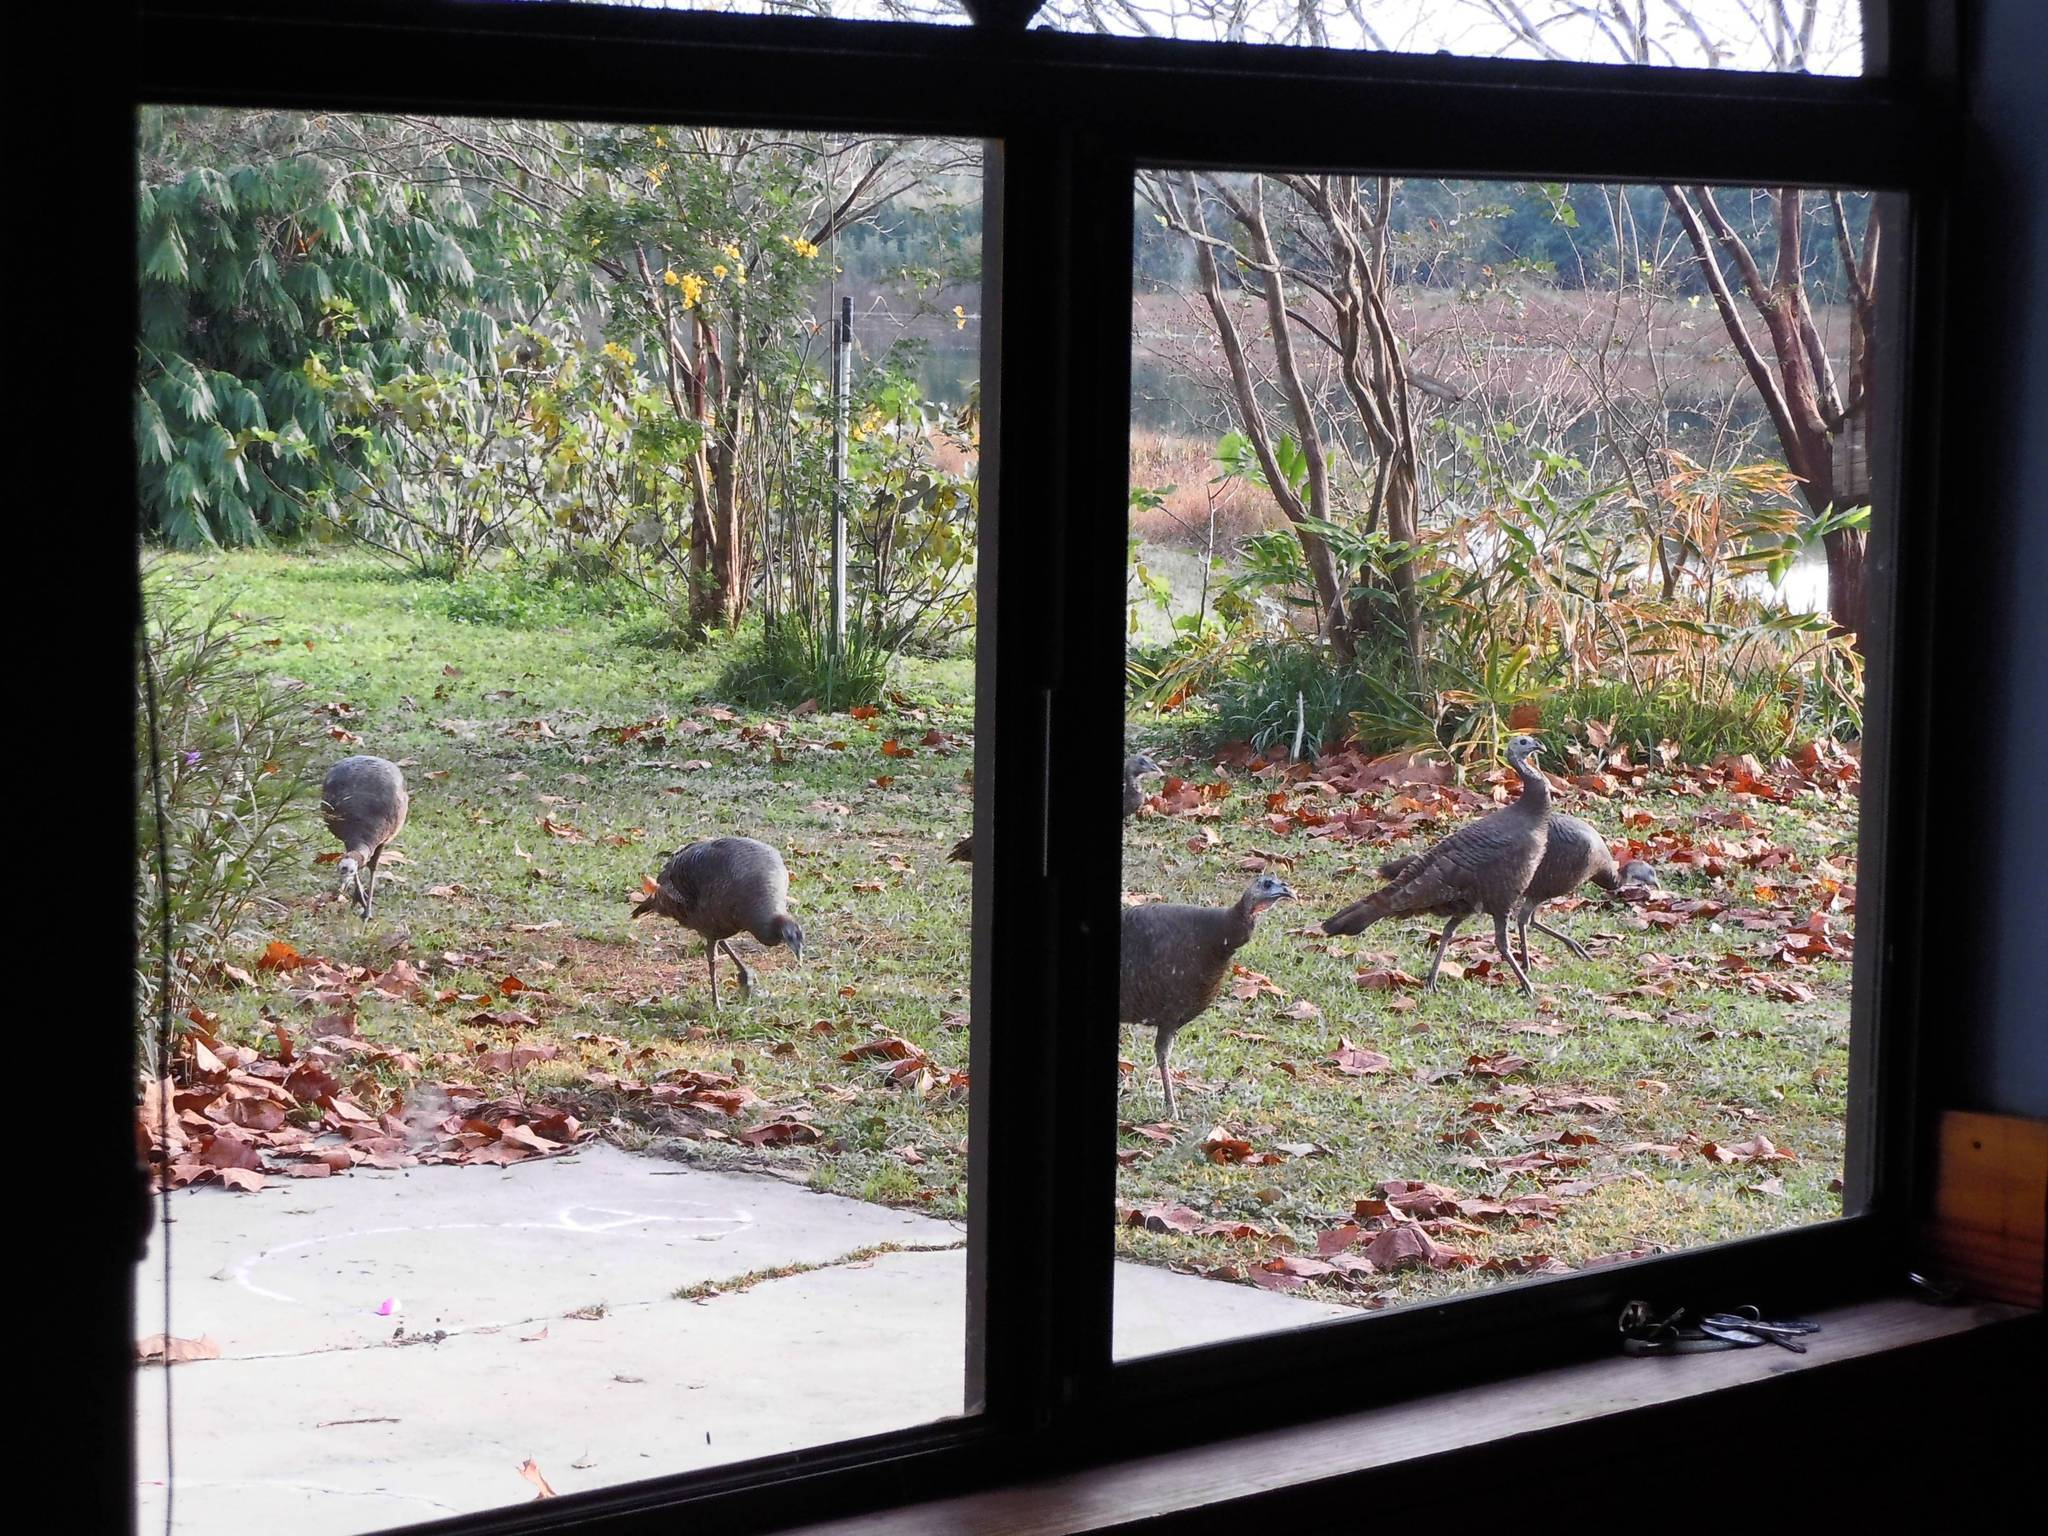 As viewed from the kitchen window, a flock of female turkeys meanders close to the house.